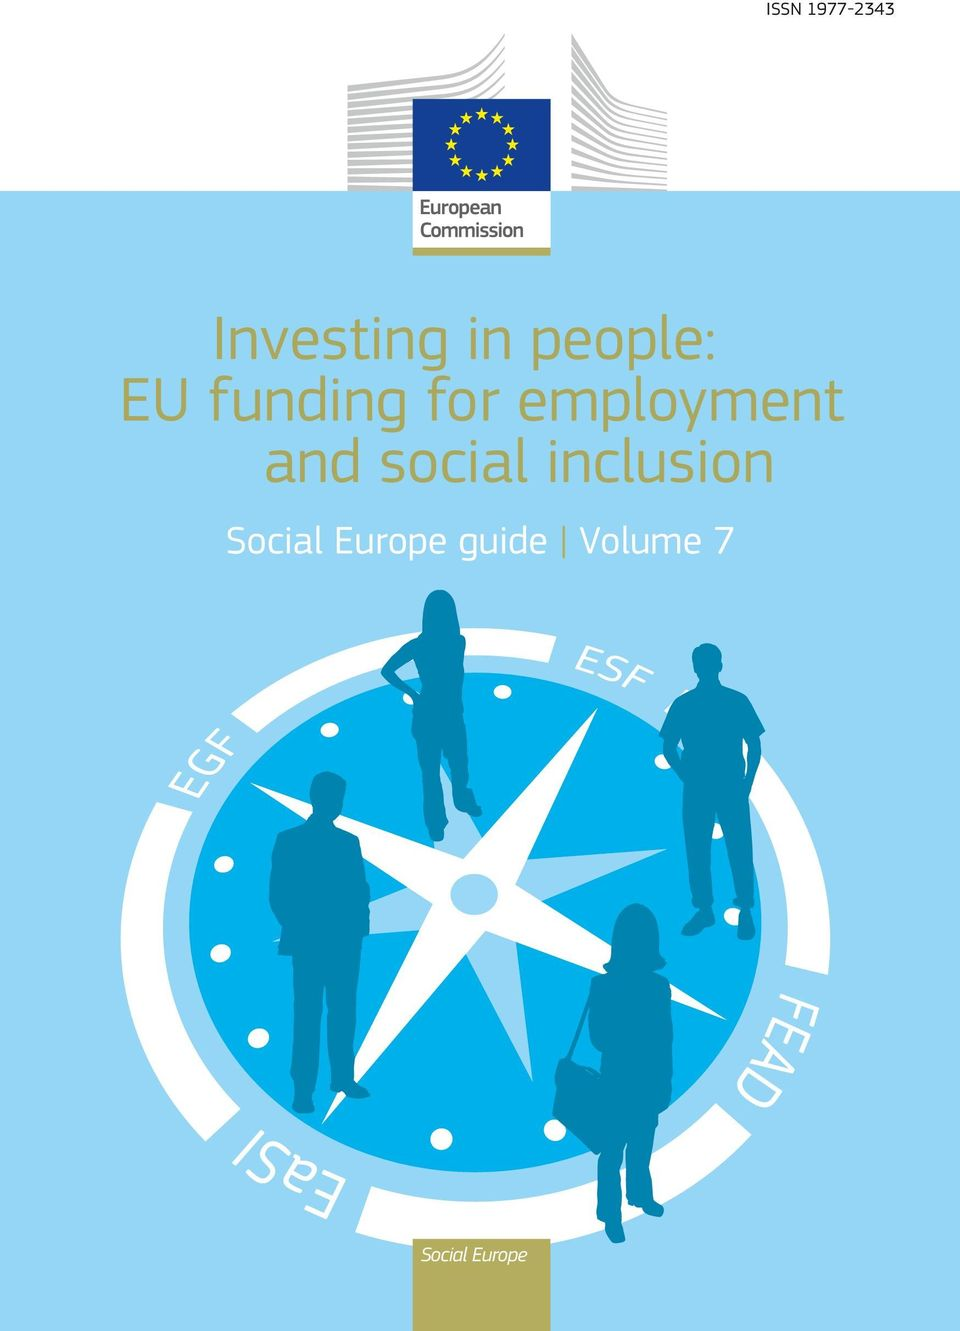 employment and social inclusion